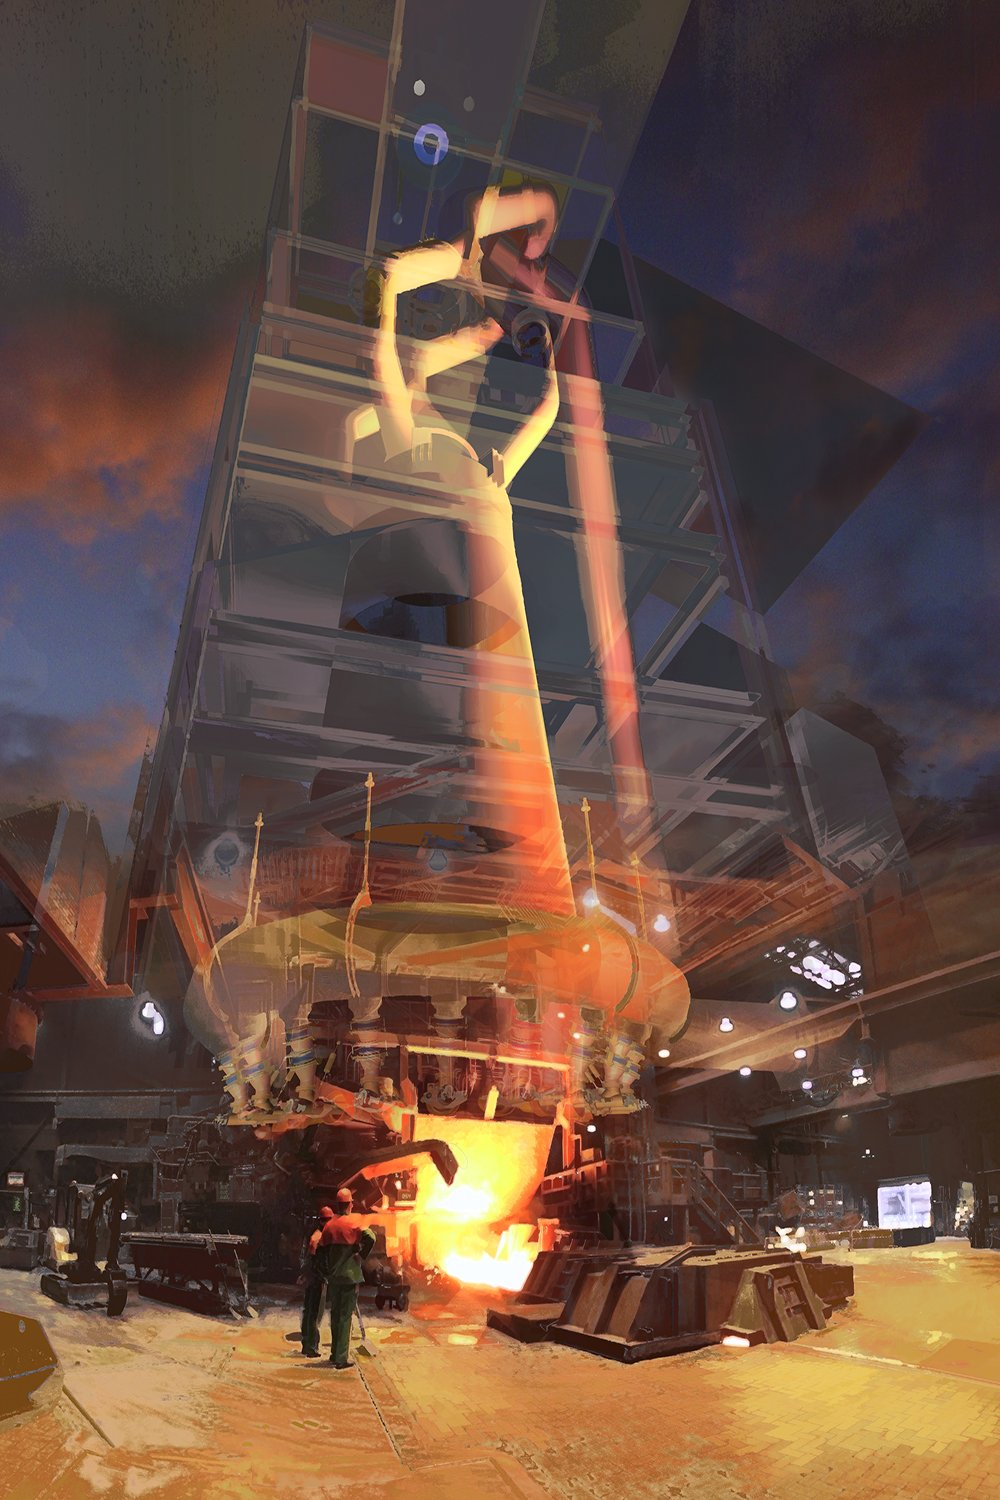 3D-Reality - Here is a Blast Furnace, as you will never see in reality